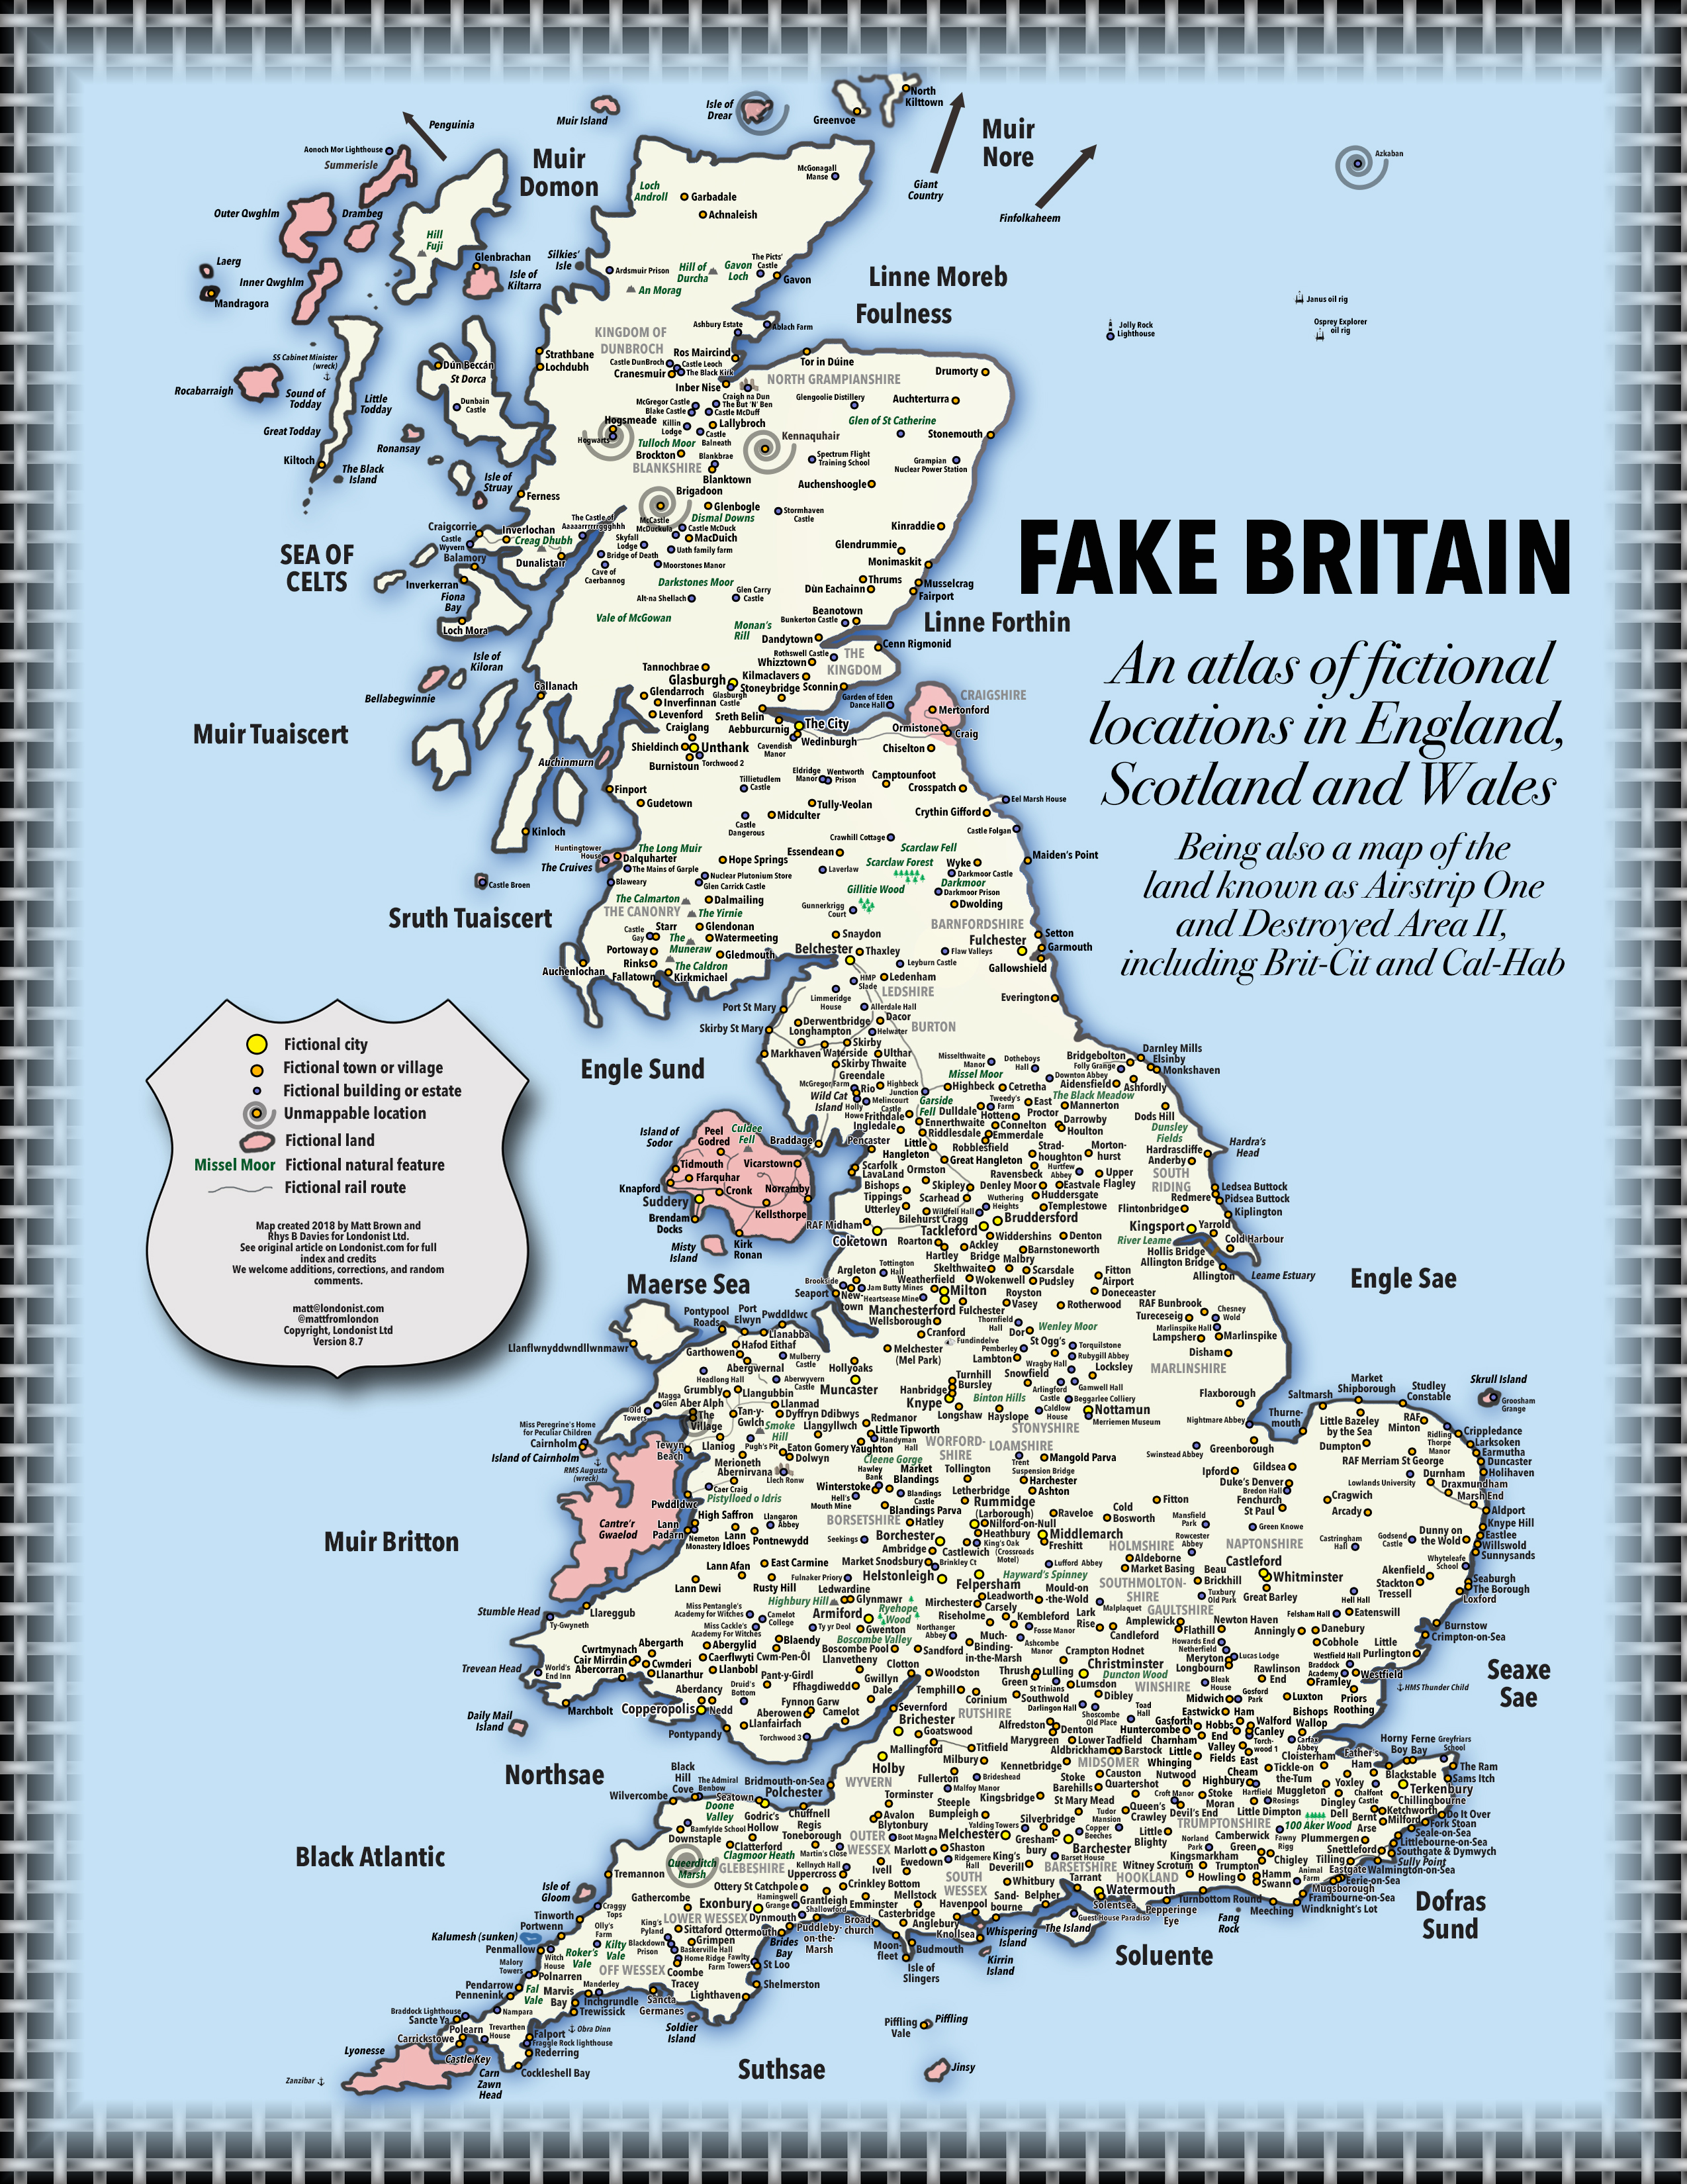 Fake Britain: A Map Of Fictional Locations In England ... on sweden map, england map, greece map, europe map, the netherlands map, morocco map, british isles map, australia map, britain map, asia map, spain map, japan map, world map, france map, holland map, germany map, ukraine map, united kingdom map, italy map, canada map,